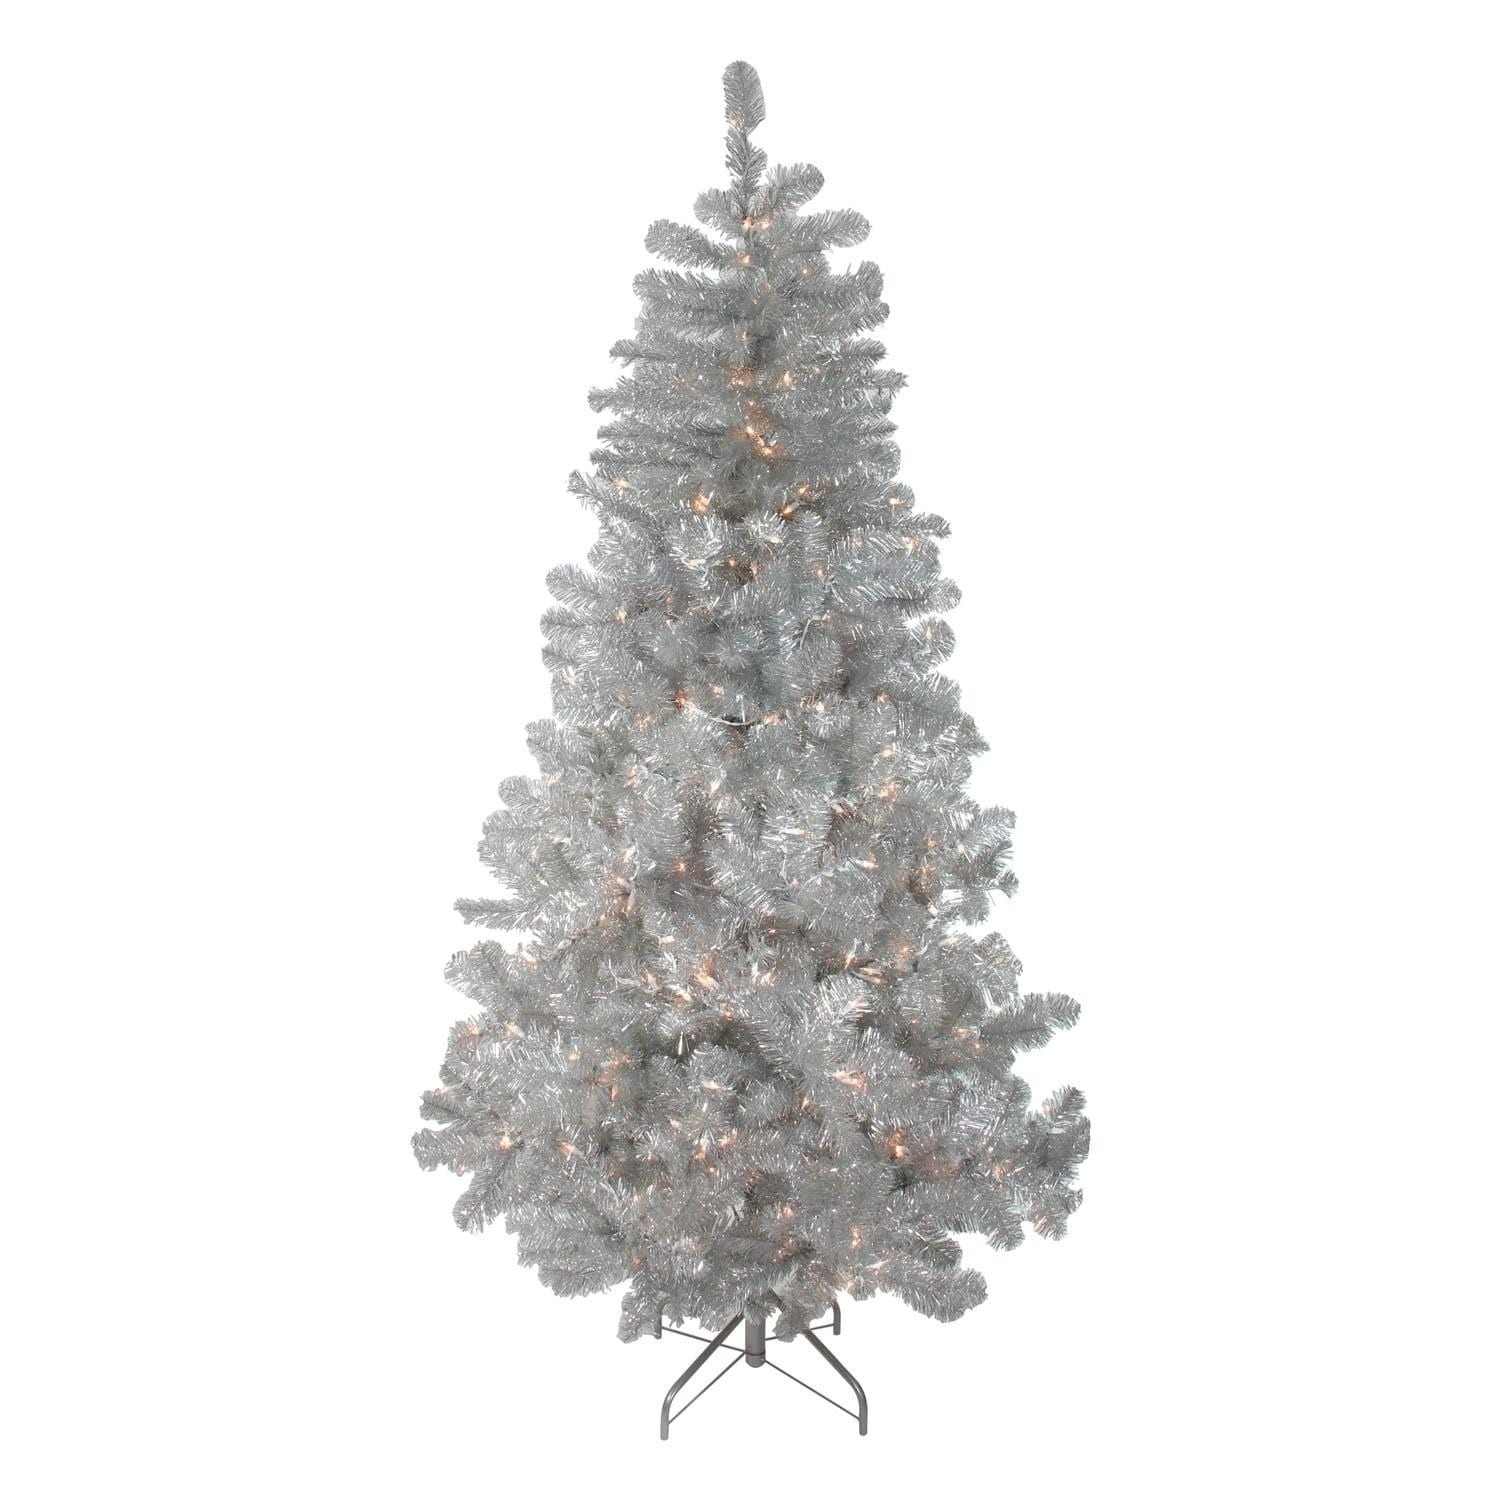 Tinsel Christmas Tree.6 5 Pre Lit Silver Metallic Artificial Tinsel Christmas Tree Clear Lights